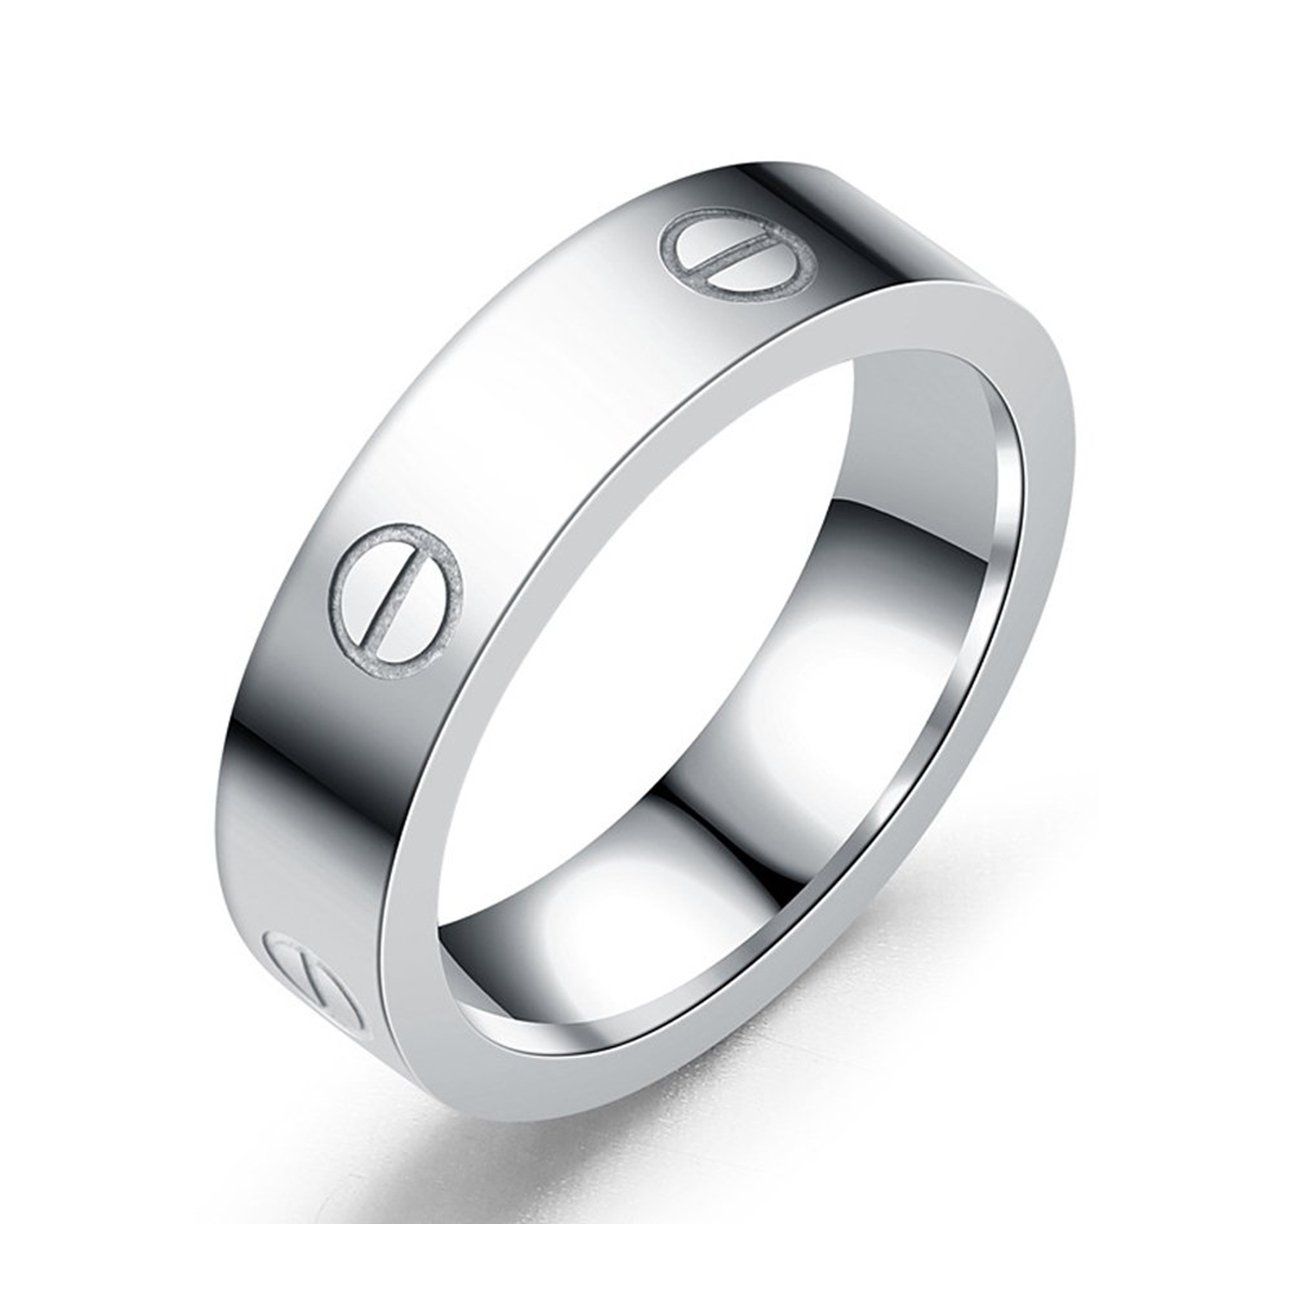 Mintrayor Lifetime Love Rings for Women Couples Engagement Titanium Stainless Steel Band Size 7 Silver